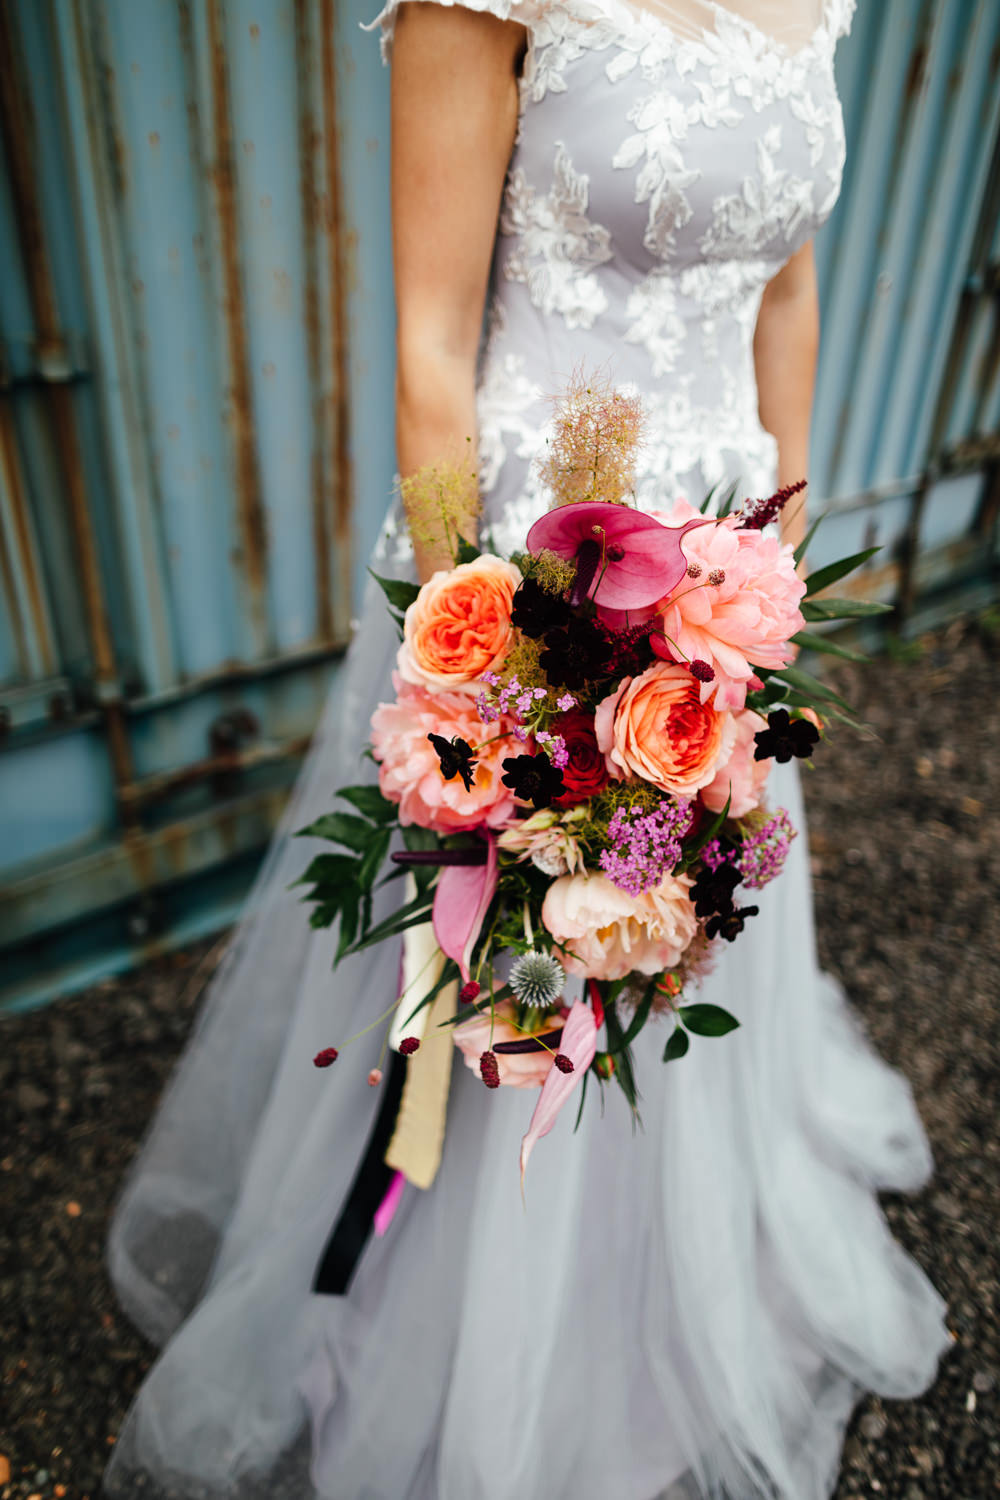 Bouquet Flowers Bride Bridal Flamingo Plant Rose Cosmos Thistle Tropical Wedding Inspiration Emily Little Photography